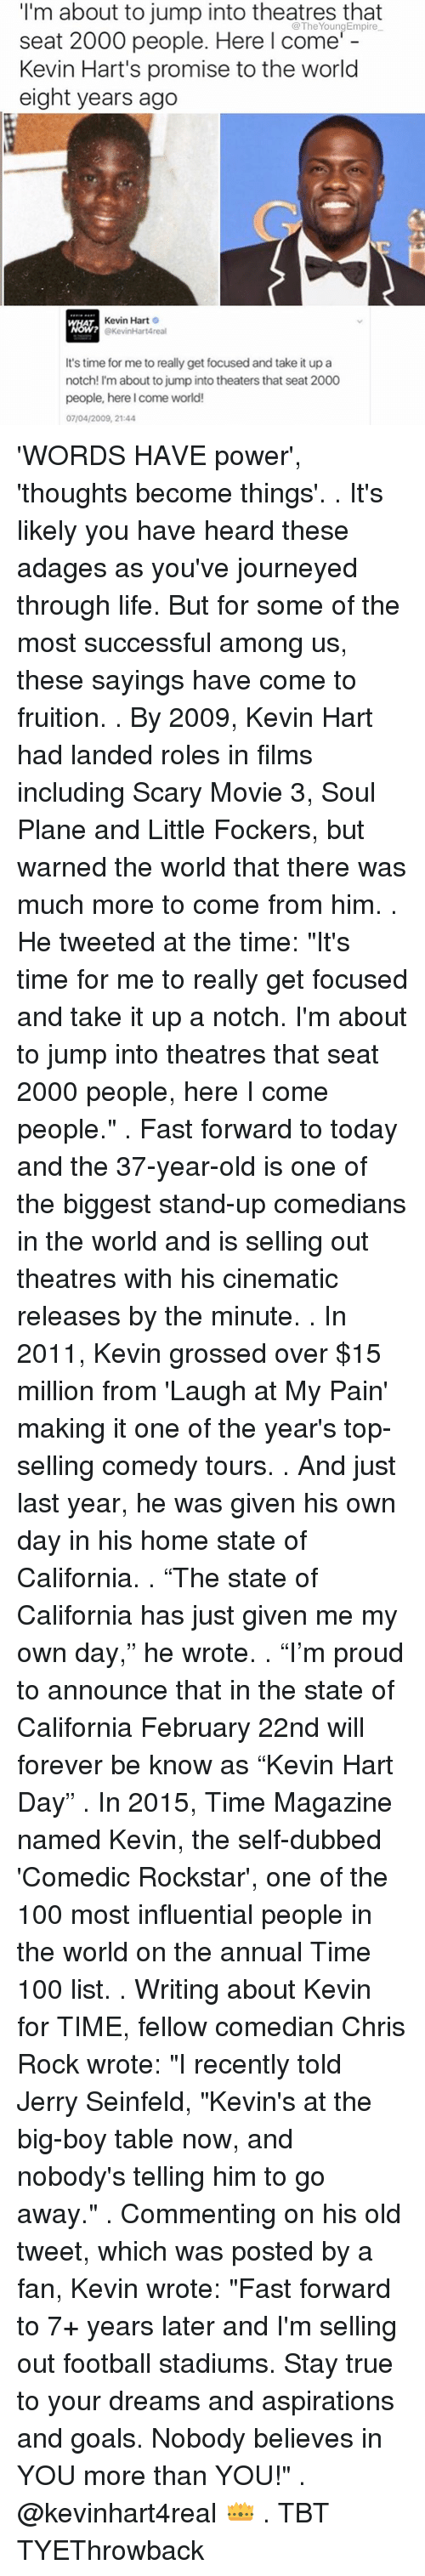 "Jerri: I'm about to jump into theatres that  seat 2000 people. Here I come'  Kevin Hart's promise to the world  eight years ago  Kevin Hart  O  @KevinHartAreal  It's time for me to really get focused and take it up a  notch! I'm about to jump into theaters that seat 2000  people, here I come world!  07/04/2009, 21:44 'WORDS HAVE power', 'thoughts become things'. . It's likely you have heard these adages as you've journeyed through life. But for some of the most successful among us, these sayings have come to fruition. . By 2009, Kevin Hart had landed roles in films including Scary Movie 3, Soul Plane and Little Fockers, but warned the world that there was much more to come from him. . He tweeted at the time: ""It's time for me to really get focused and take it up a notch. I'm about to jump into theatres that seat 2000 people, here I come people."" . Fast forward to today and the 37-year-old is one of the biggest stand-up comedians in the world and is selling out theatres with his cinematic releases by the minute. . In 2011, Kevin grossed over $15 million from 'Laugh at My Pain' making it one of the year's top-selling comedy tours. . And just last year, he was given his own day in his home state of California. . ""The state of California has just given me my own day,"" he wrote. . ""I'm proud to announce that in the state of California February 22nd will forever be know as ""Kevin Hart Day"" . In 2015, Time Magazine named Kevin, the self-dubbed 'Comedic Rockstar', one of the 100 most influential people in the world on the annual Time 100 list. . Writing about Kevin for TIME, fellow comedian Chris Rock wrote: ""I recently told Jerry Seinfeld, ""Kevin's at the big-boy table now, and nobody's telling him to go away."" . Commenting on his old tweet, which was posted by a fan, Kevin wrote: ""Fast forward to 7+ years later and I'm selling out football stadiums. Stay true to your dreams and aspirations and goals. Nobody believes in YOU more than YOU!"" . @kevinhart4real 👑 . TBT TYEThrowback"